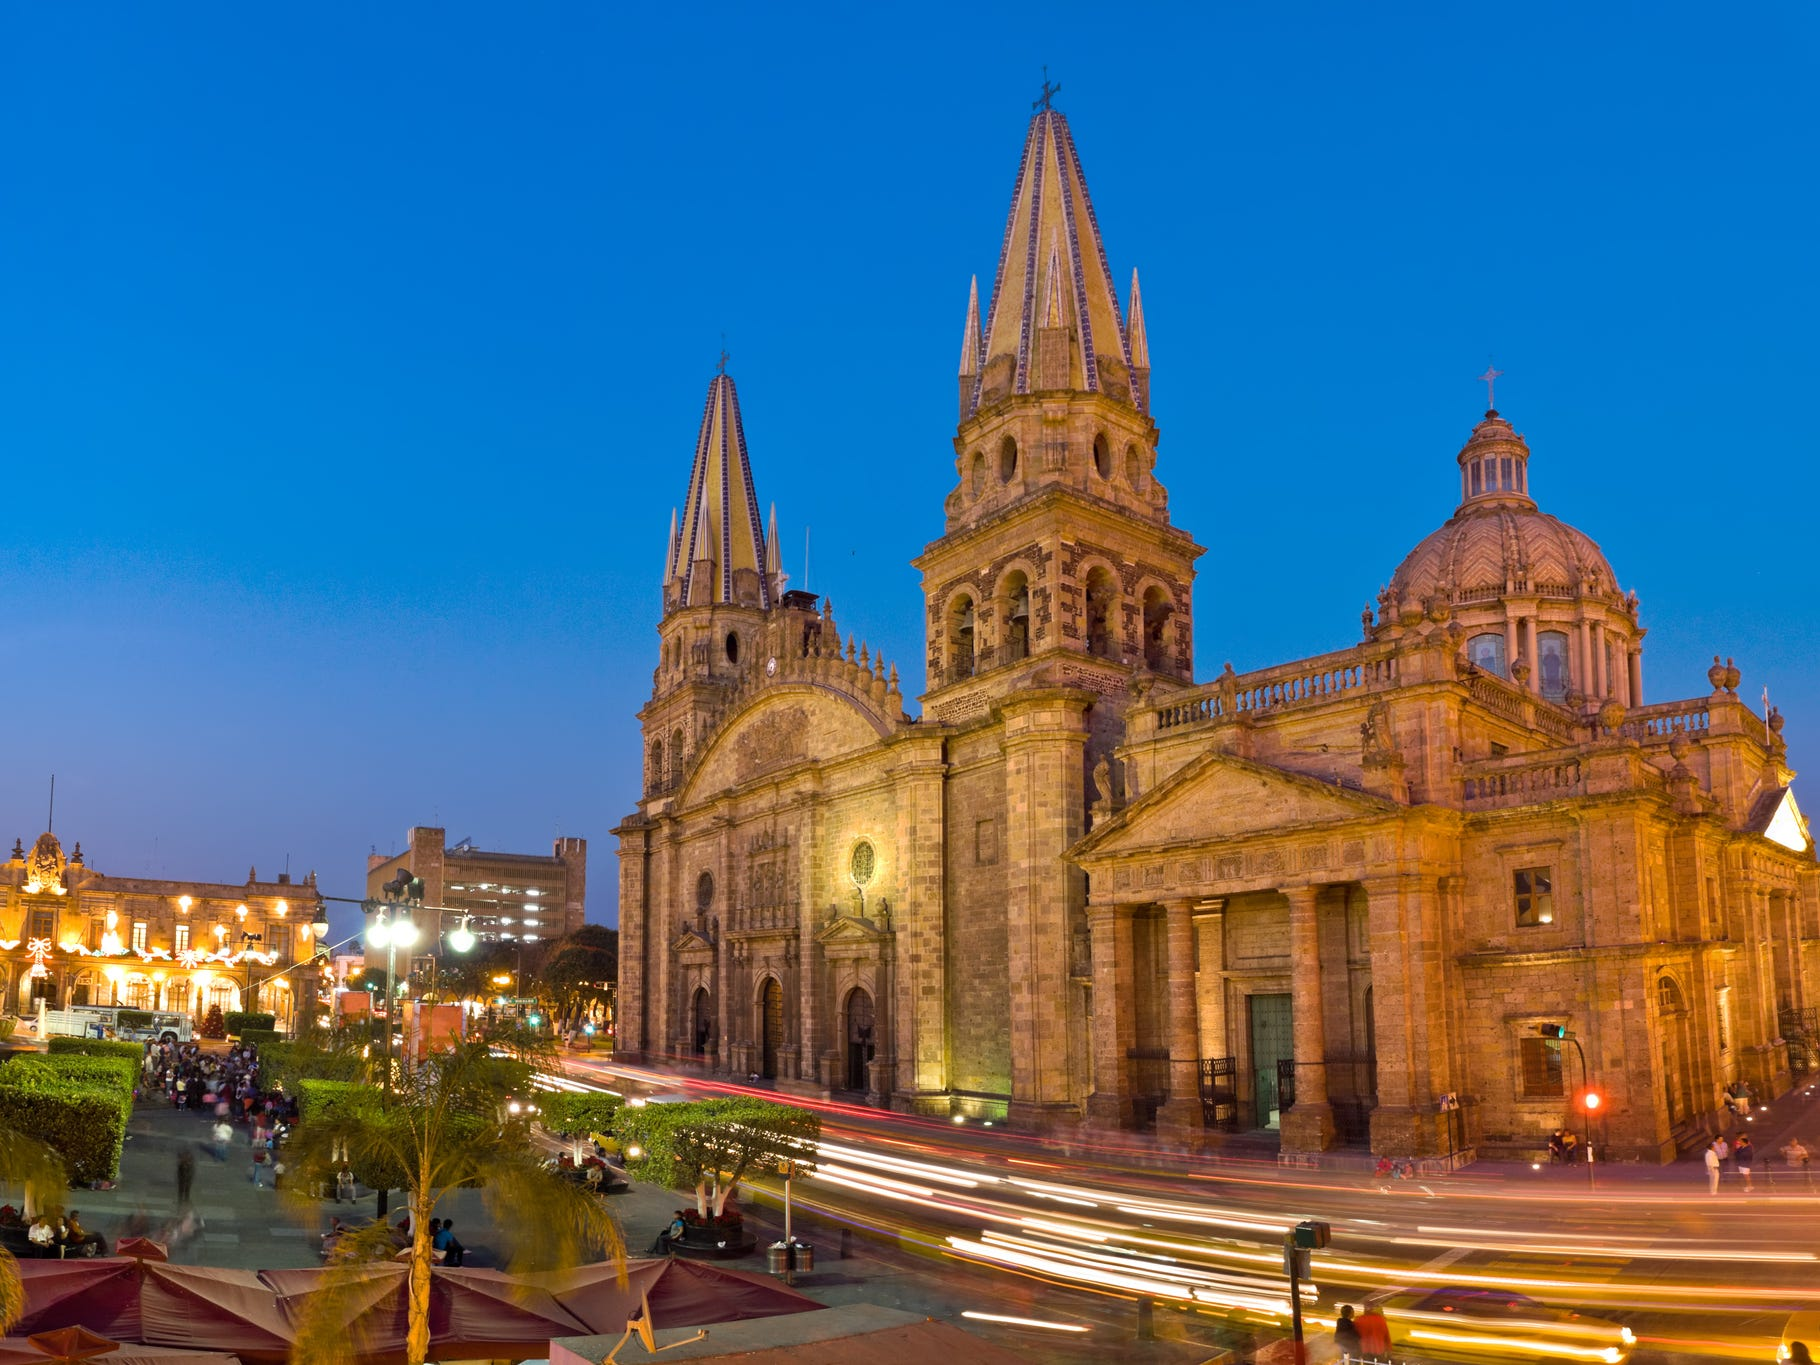 Guadalajara, Mexico: For a cheap Mexican spring break, head to the city of Guadalajara. With round-trip flights becoming cheaper to this city than to other destinations like Mexico City, you can enjoy a similar cultural experience for a better value. As reported by SmarterTravel, prices are 14 percent lower this year for spring; be sure to check out low-cost carrier Volaris for savings.